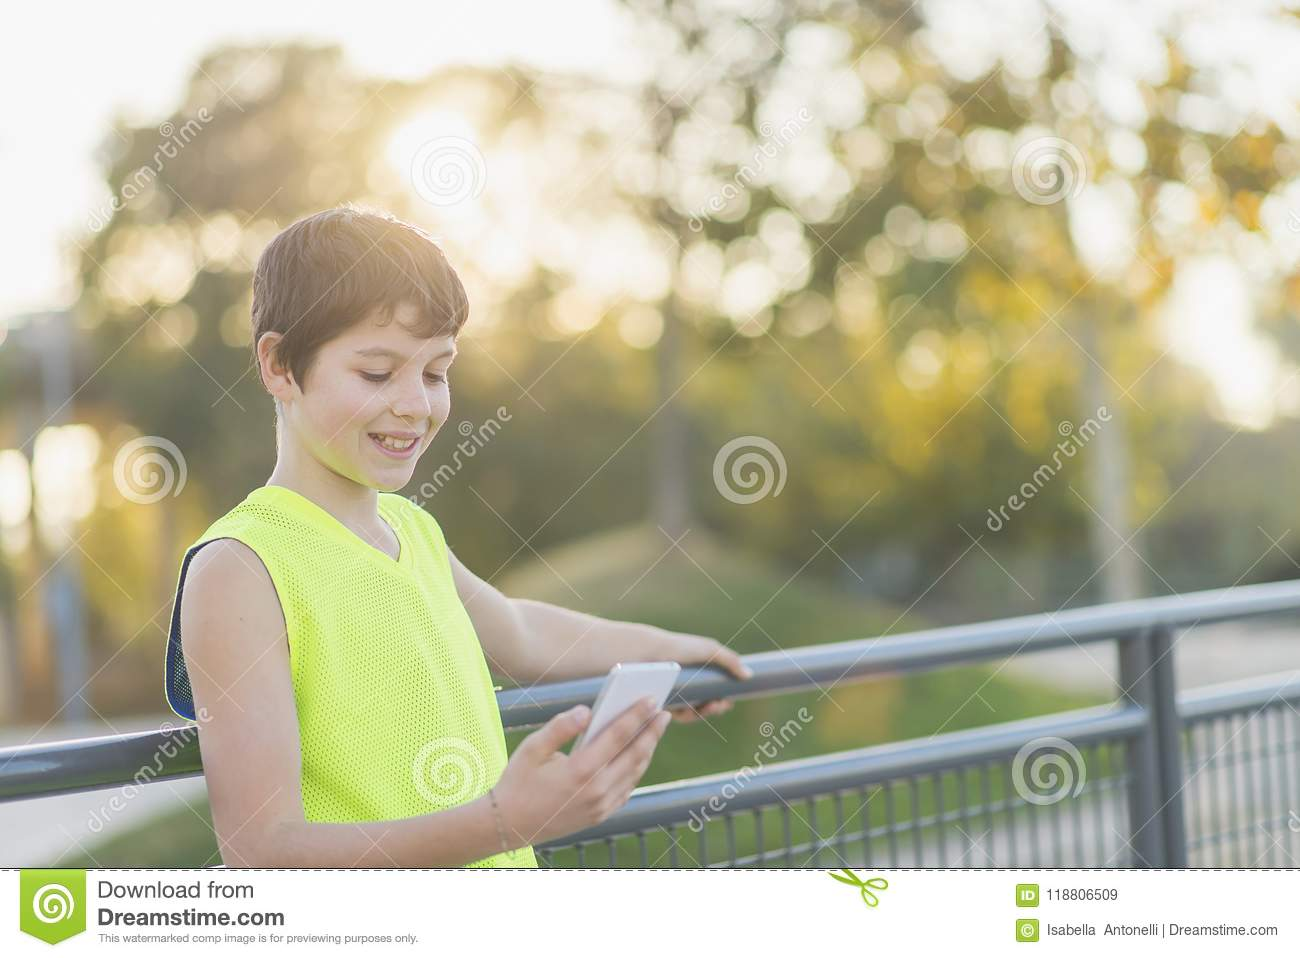 Portrait of a teenager smiling looking his smartphone